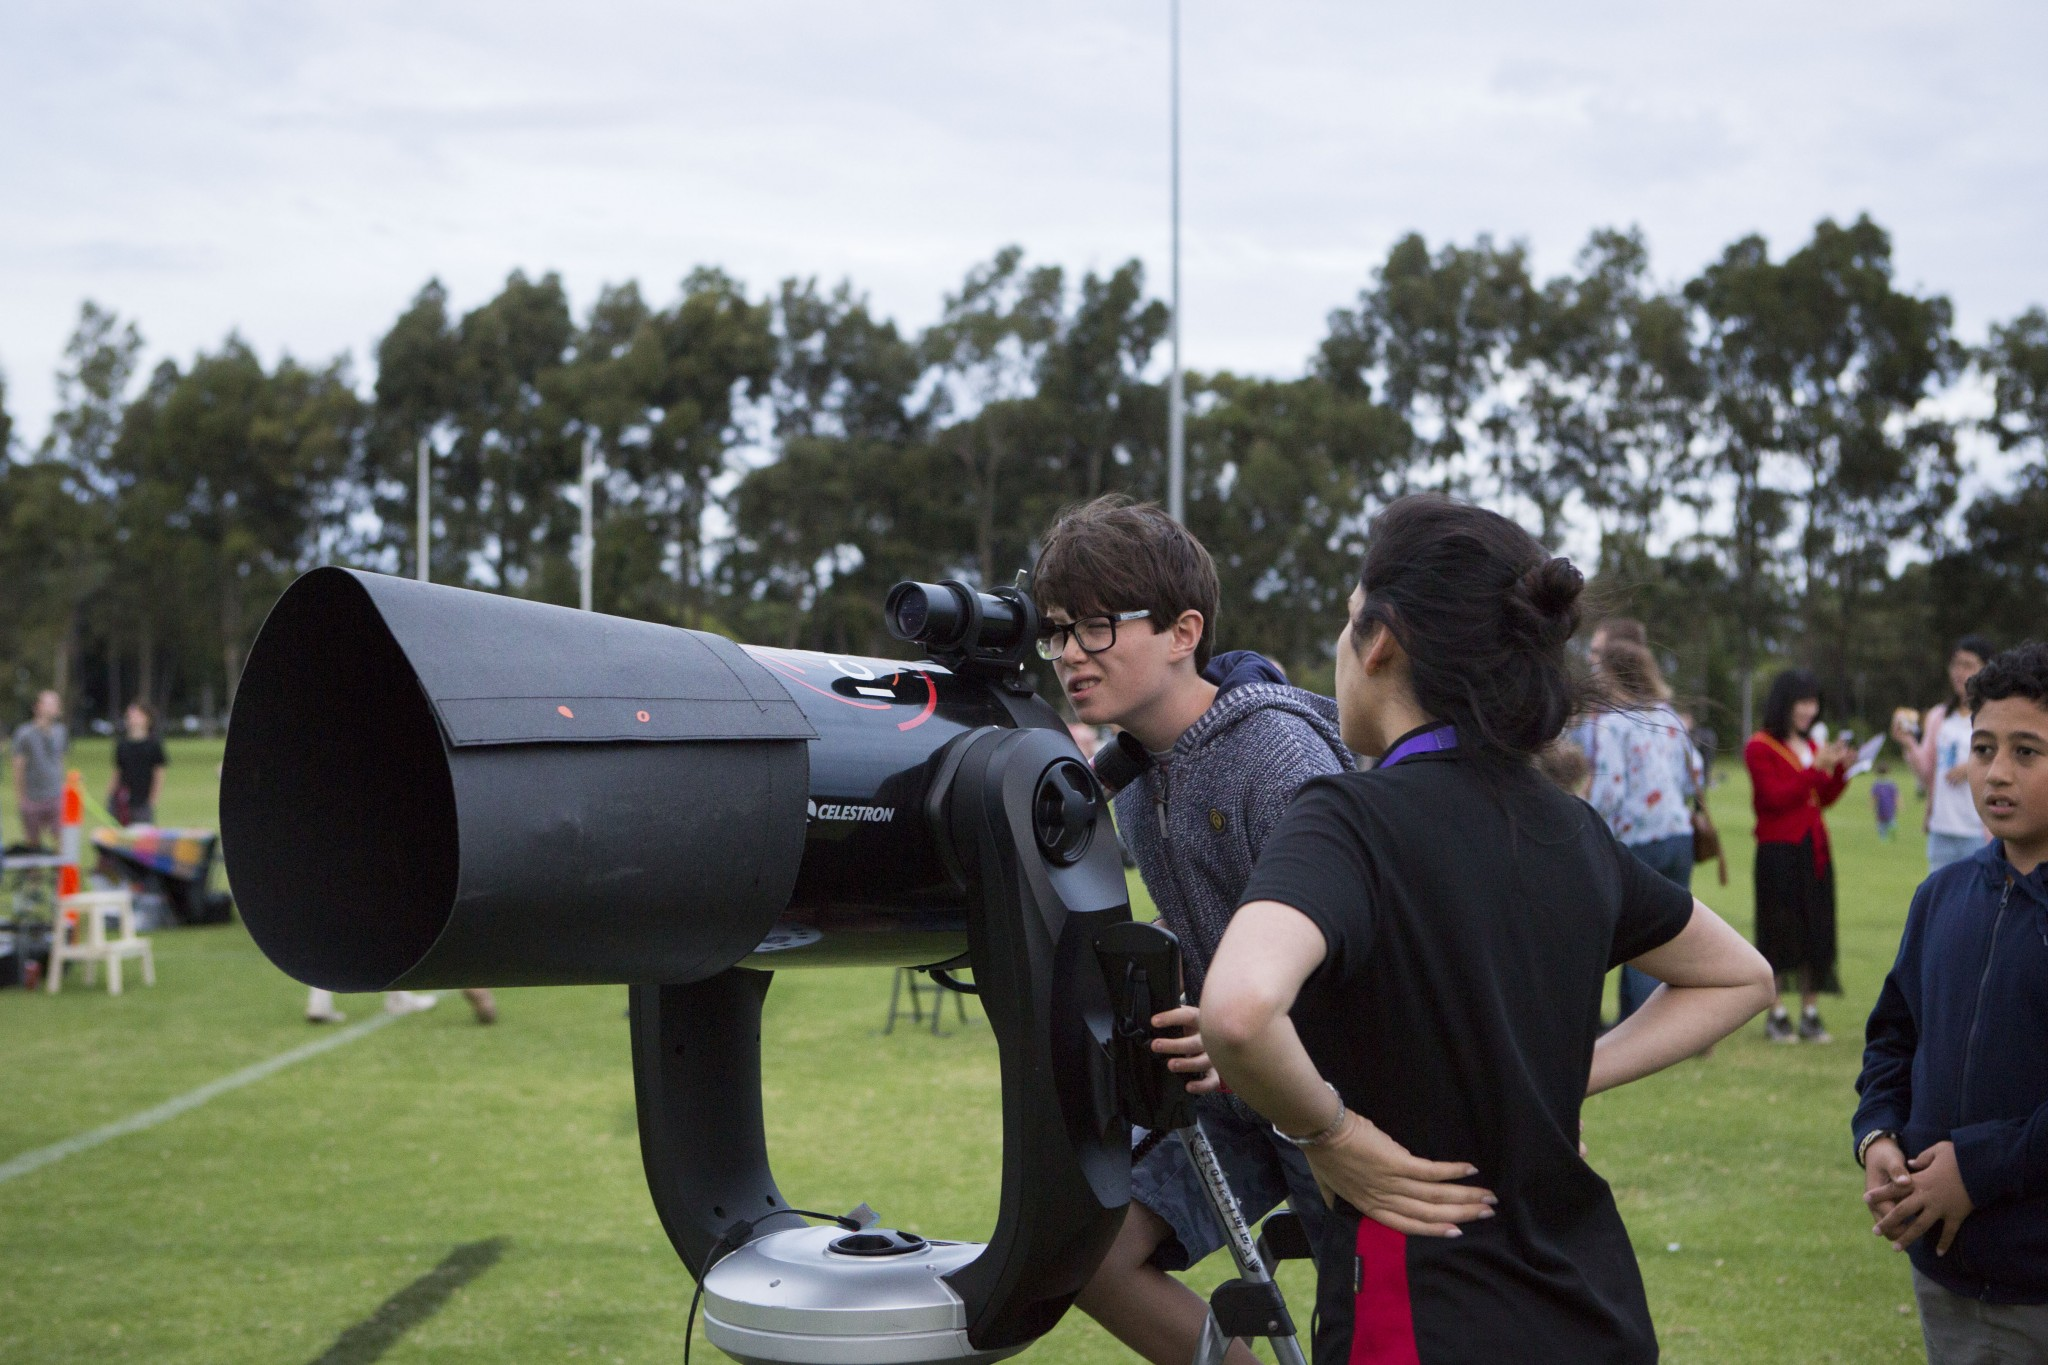 One of many telescopes at Astrofest 2018.